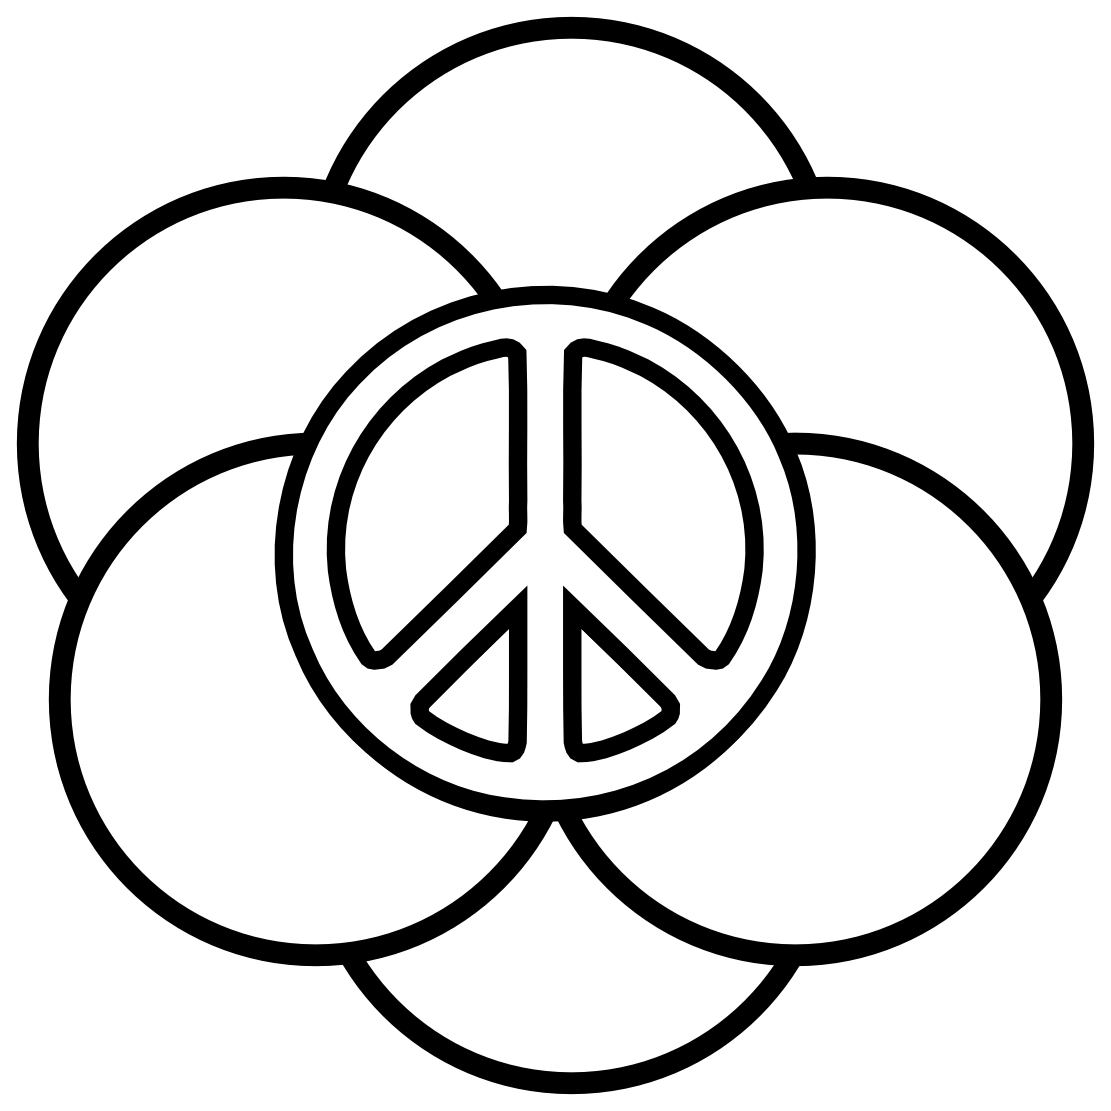 Just to eliminate any preconceived notions regarding the origin of just to eliminate any preconceived notions regarding the origin of the peace sign in 1958 british artist gerald holtom drew a circle with three biocorpaavc Choice Image